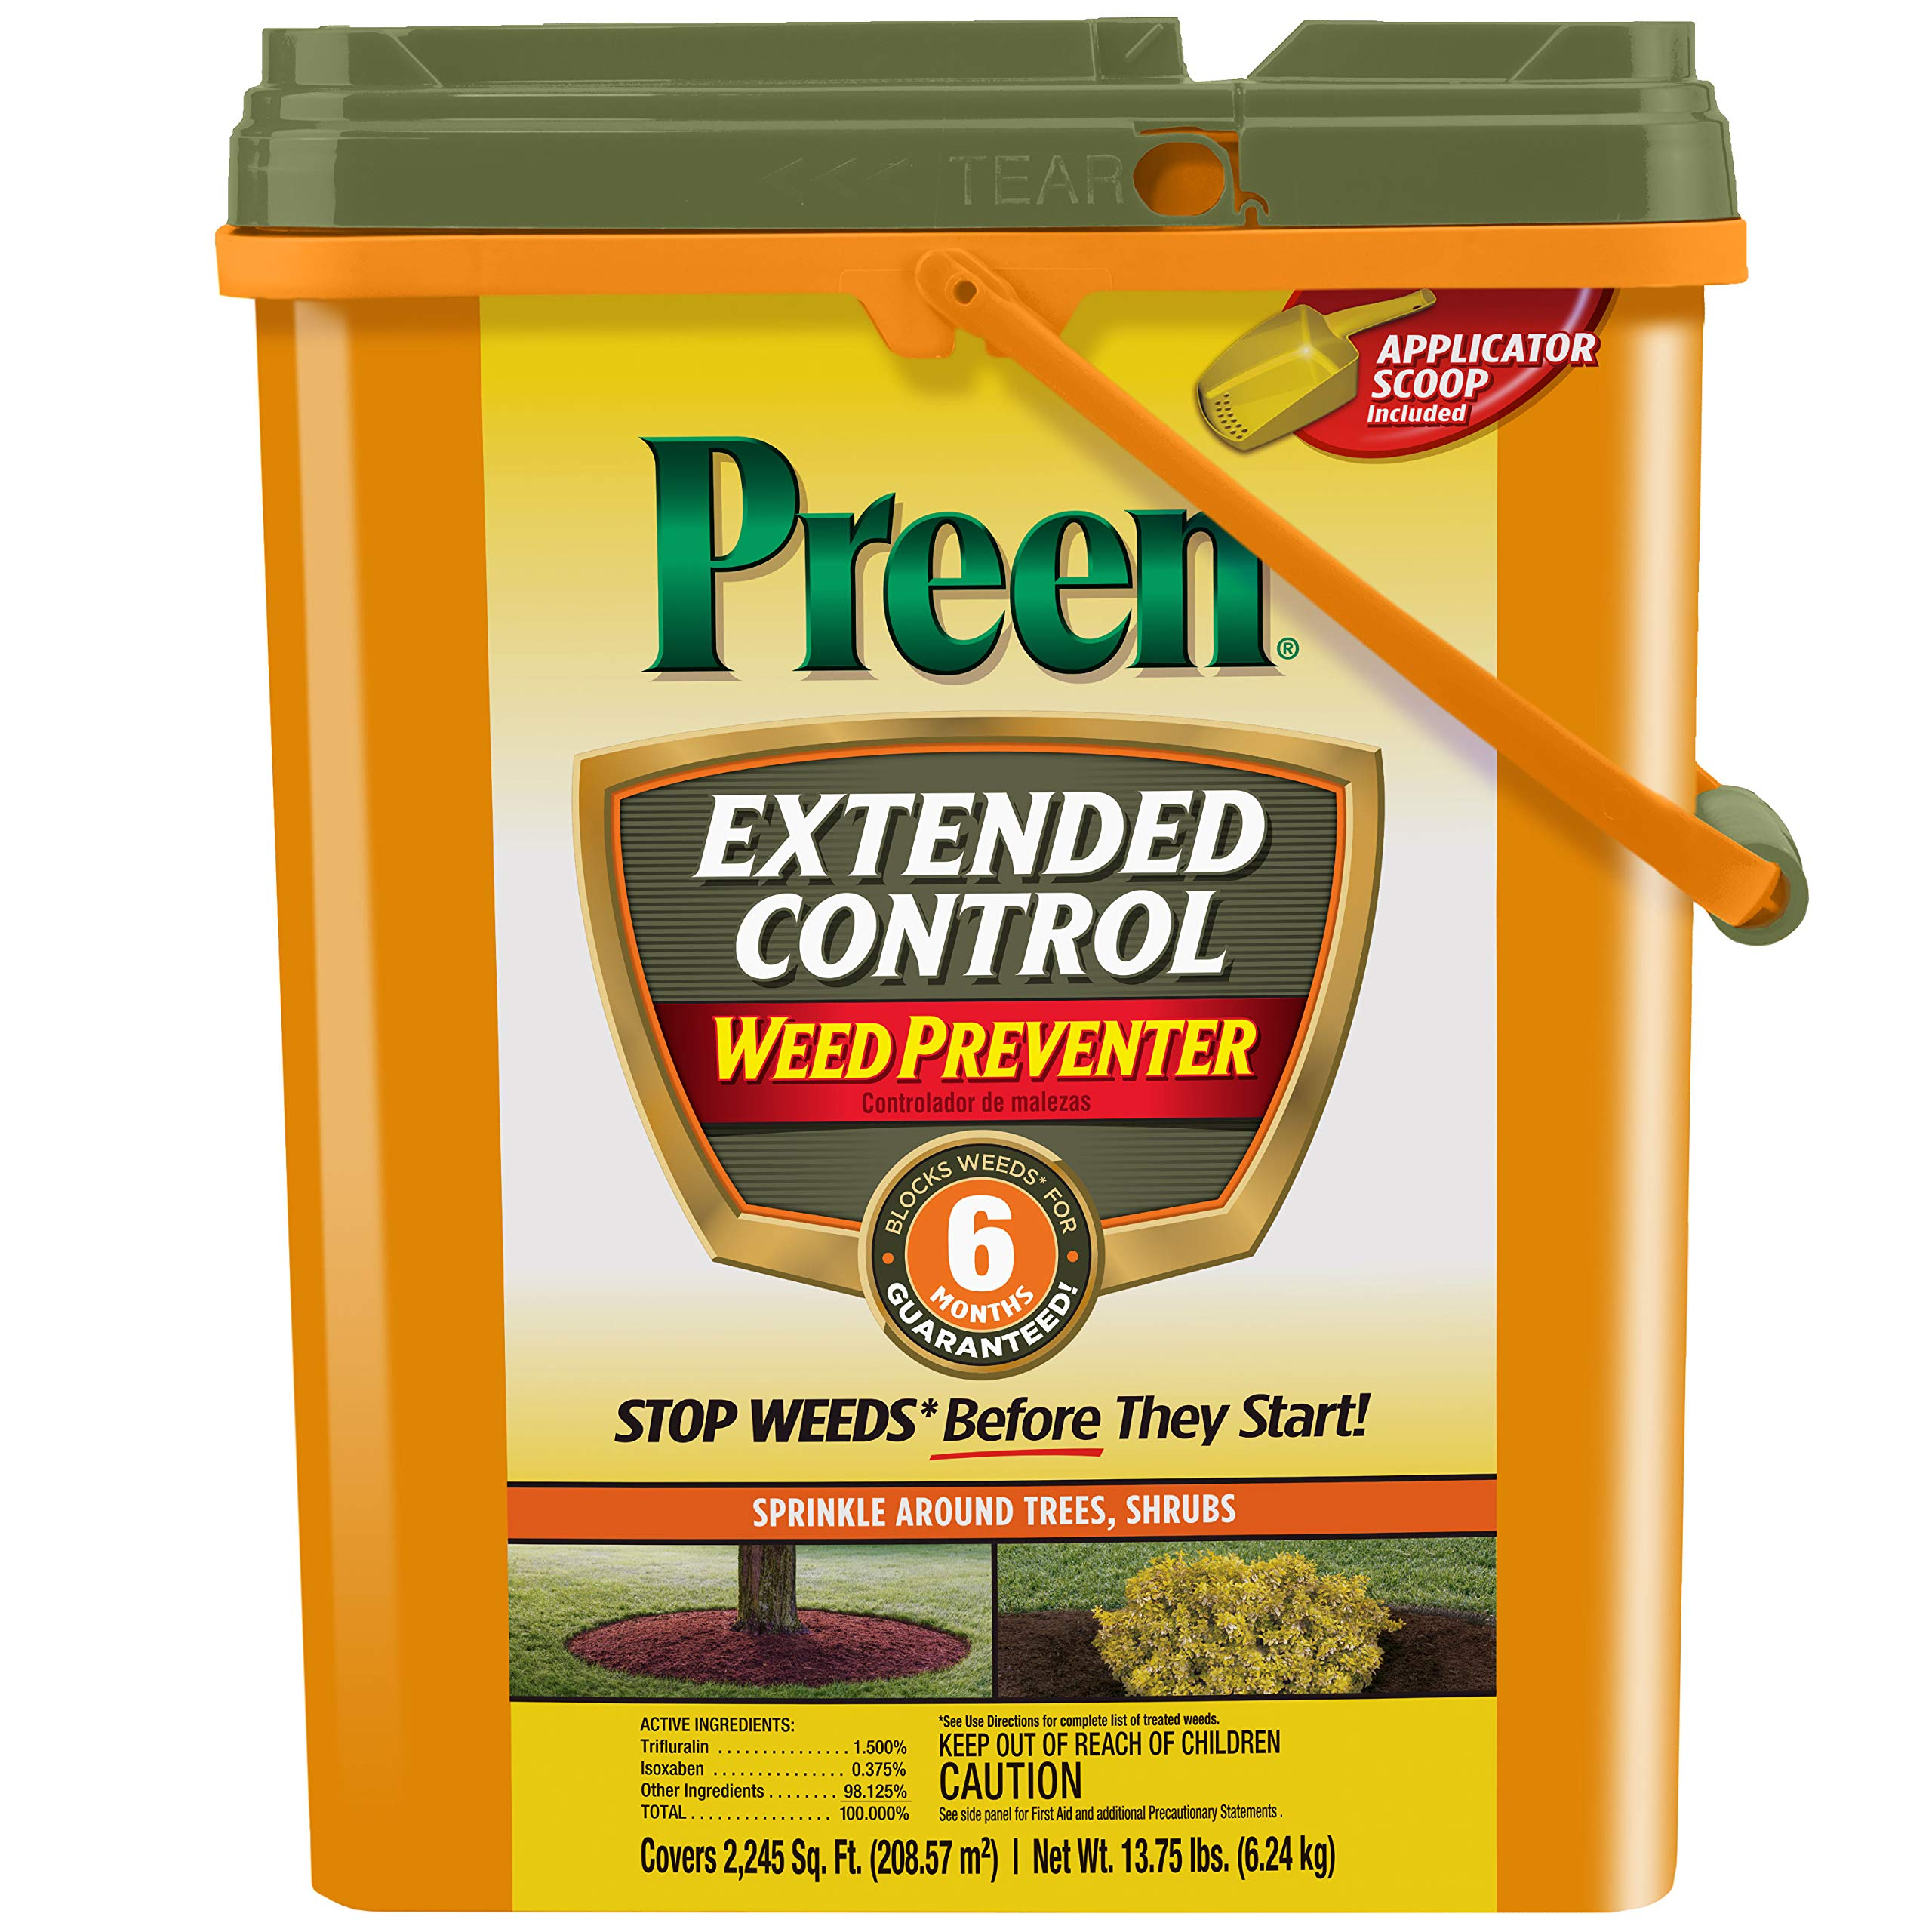 Preen Extended Control Weed Preventer, 13.75 lb pail covers 2,245 sq ft